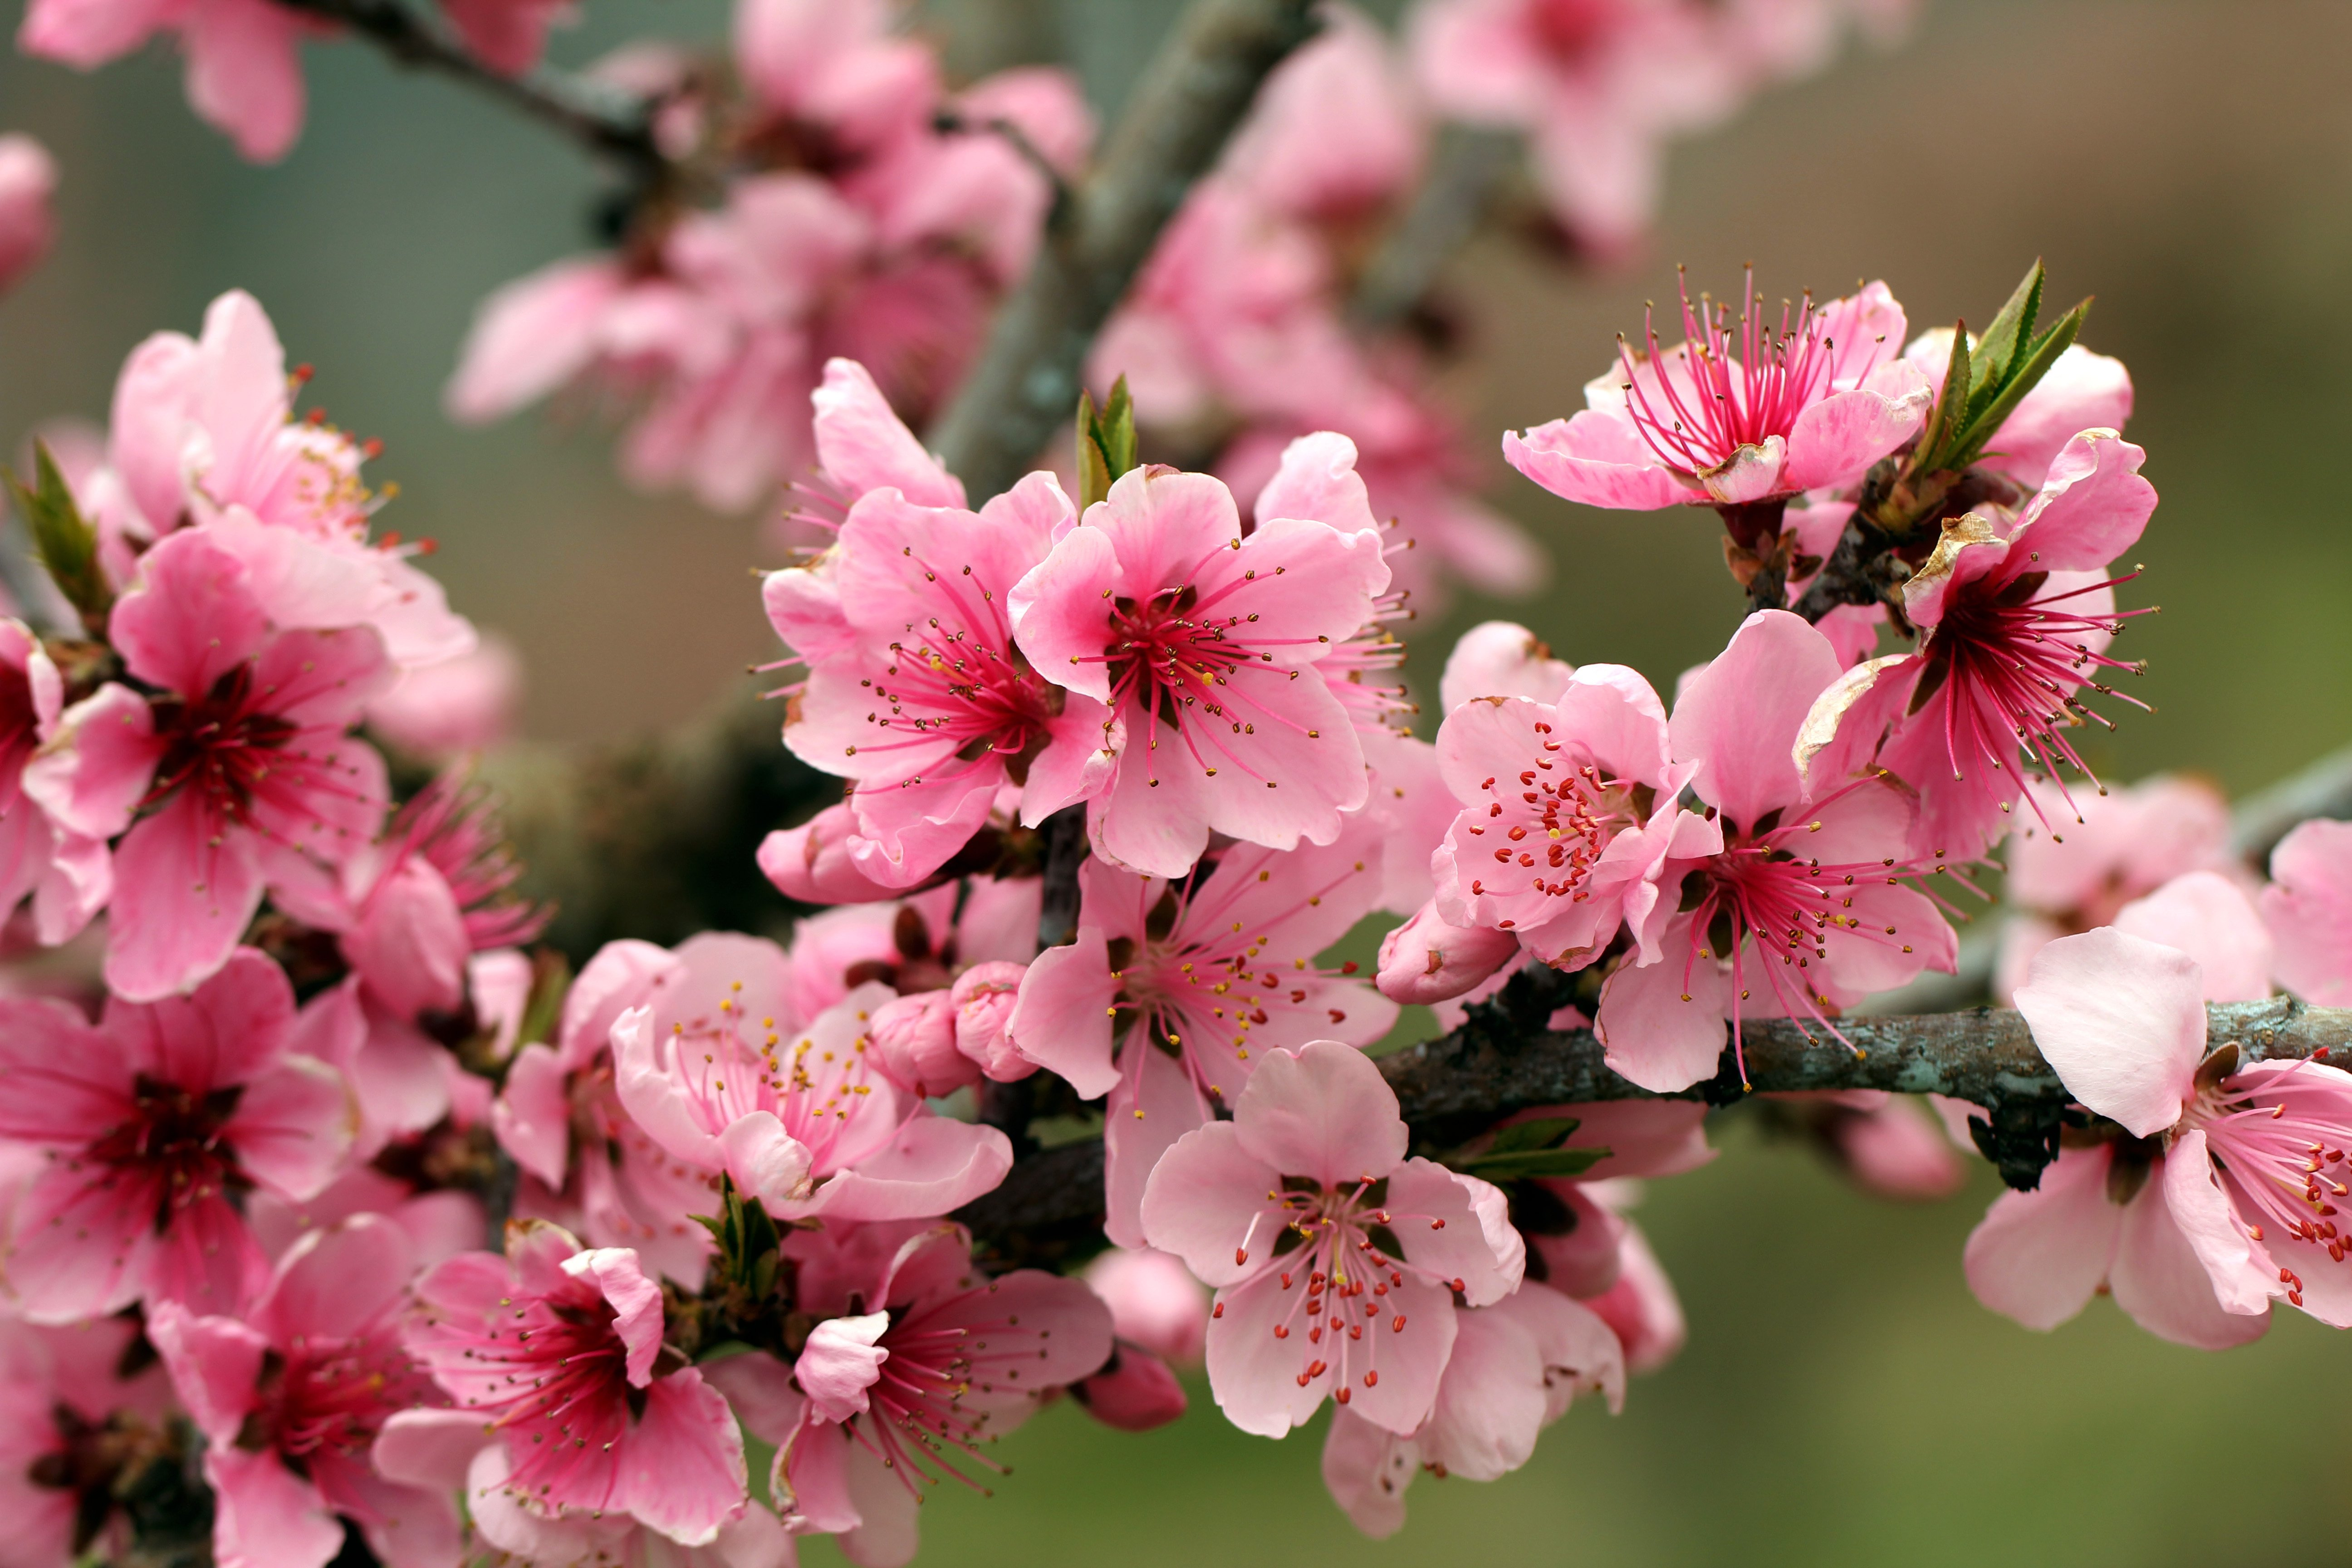 Pink Flower Tree Wallpaper The Image